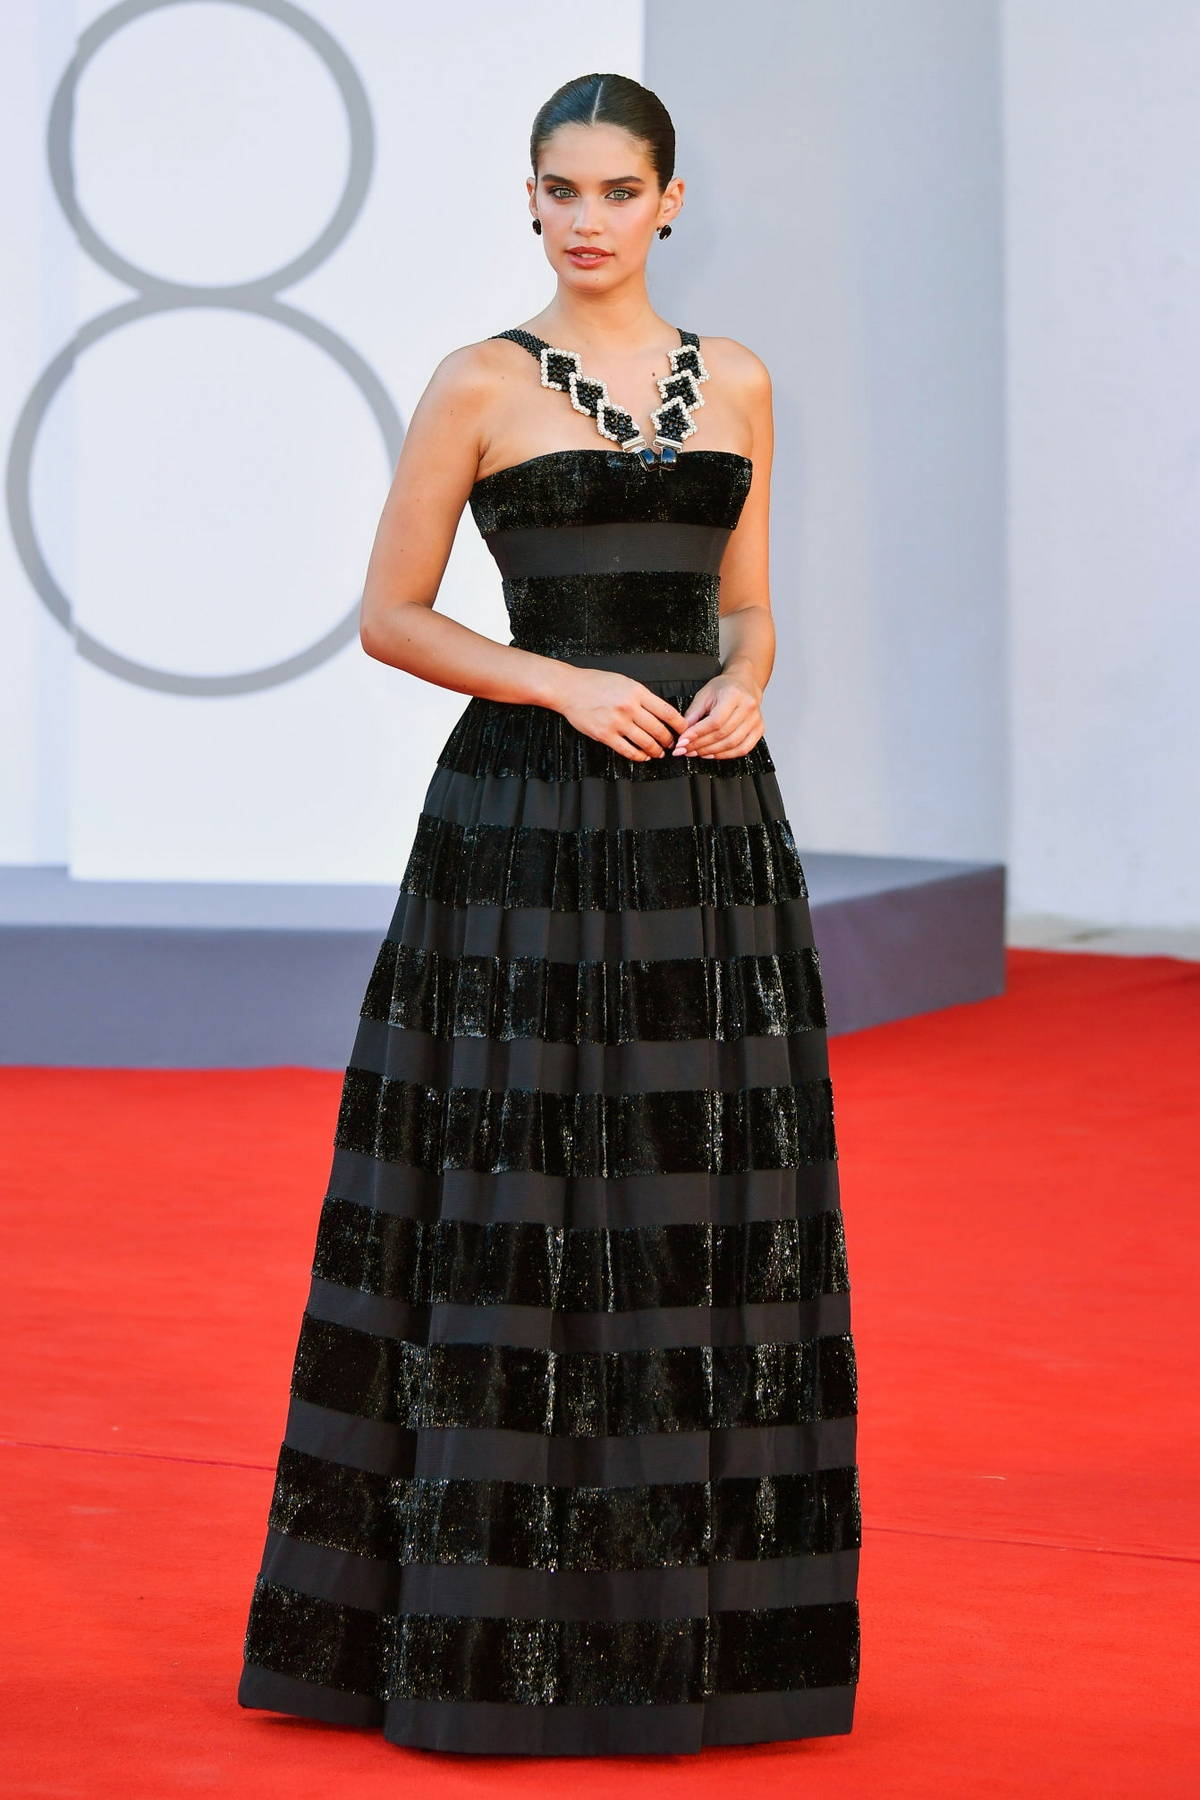 Sara Sampaio attends the Premiere of 'Madres Paralelas' during the 78th Venice International Film Festival in Venice, Italy